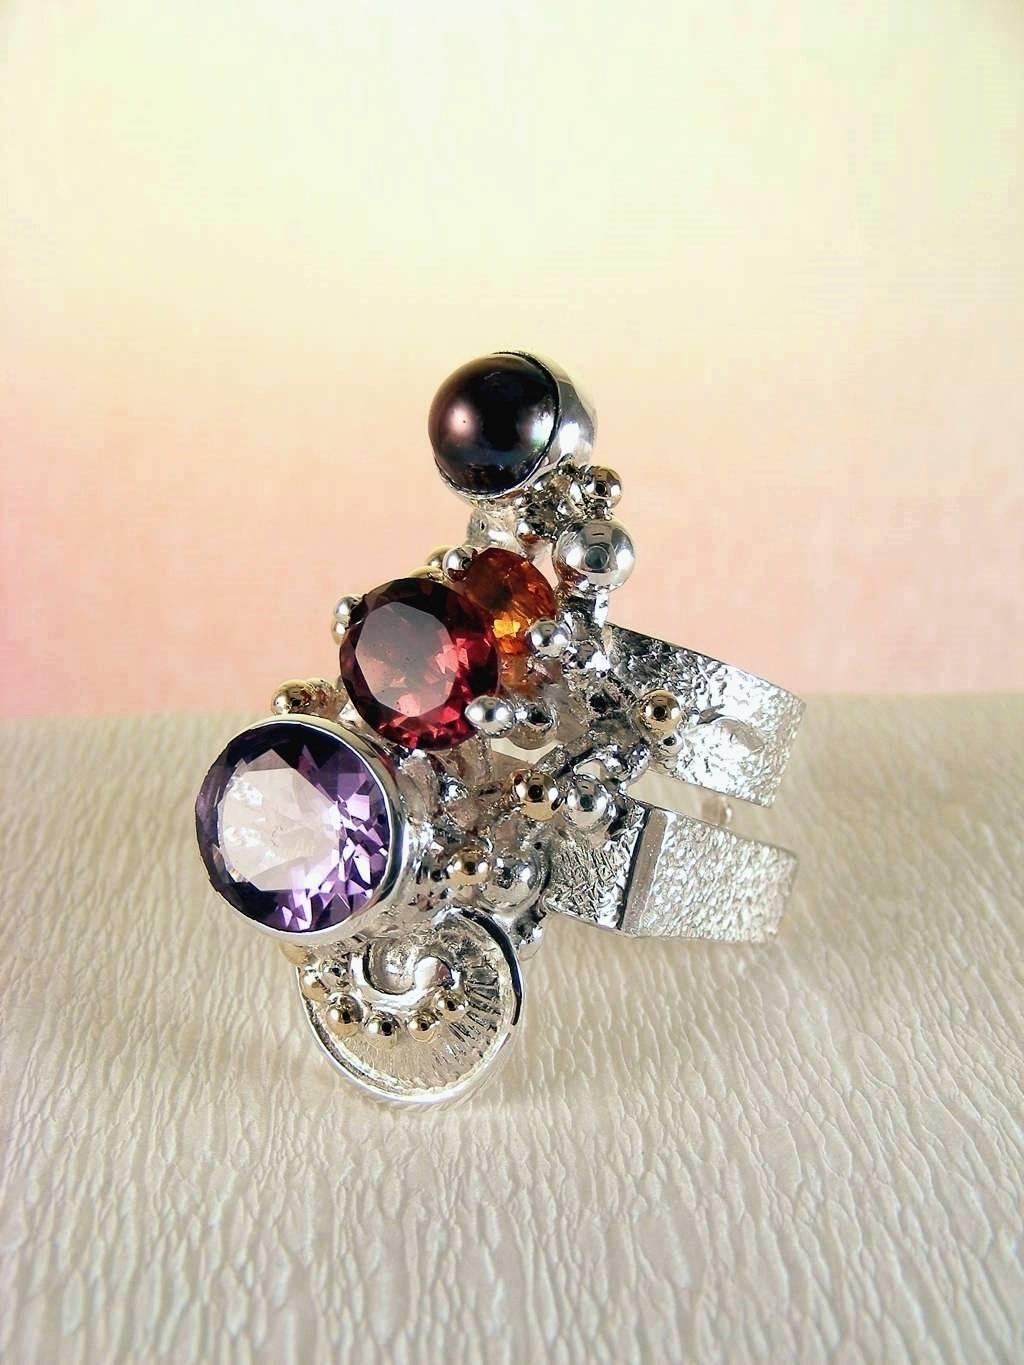 Original Handmade by Artist Designer Maker, Gregory Pyra Piro One of a Kind Original #Handmade #Sterling #Silver and #Gold, Jewellery in #London, #Art Jewellery, #Jewellery Handcrafted by #Artist, #Ring 2631